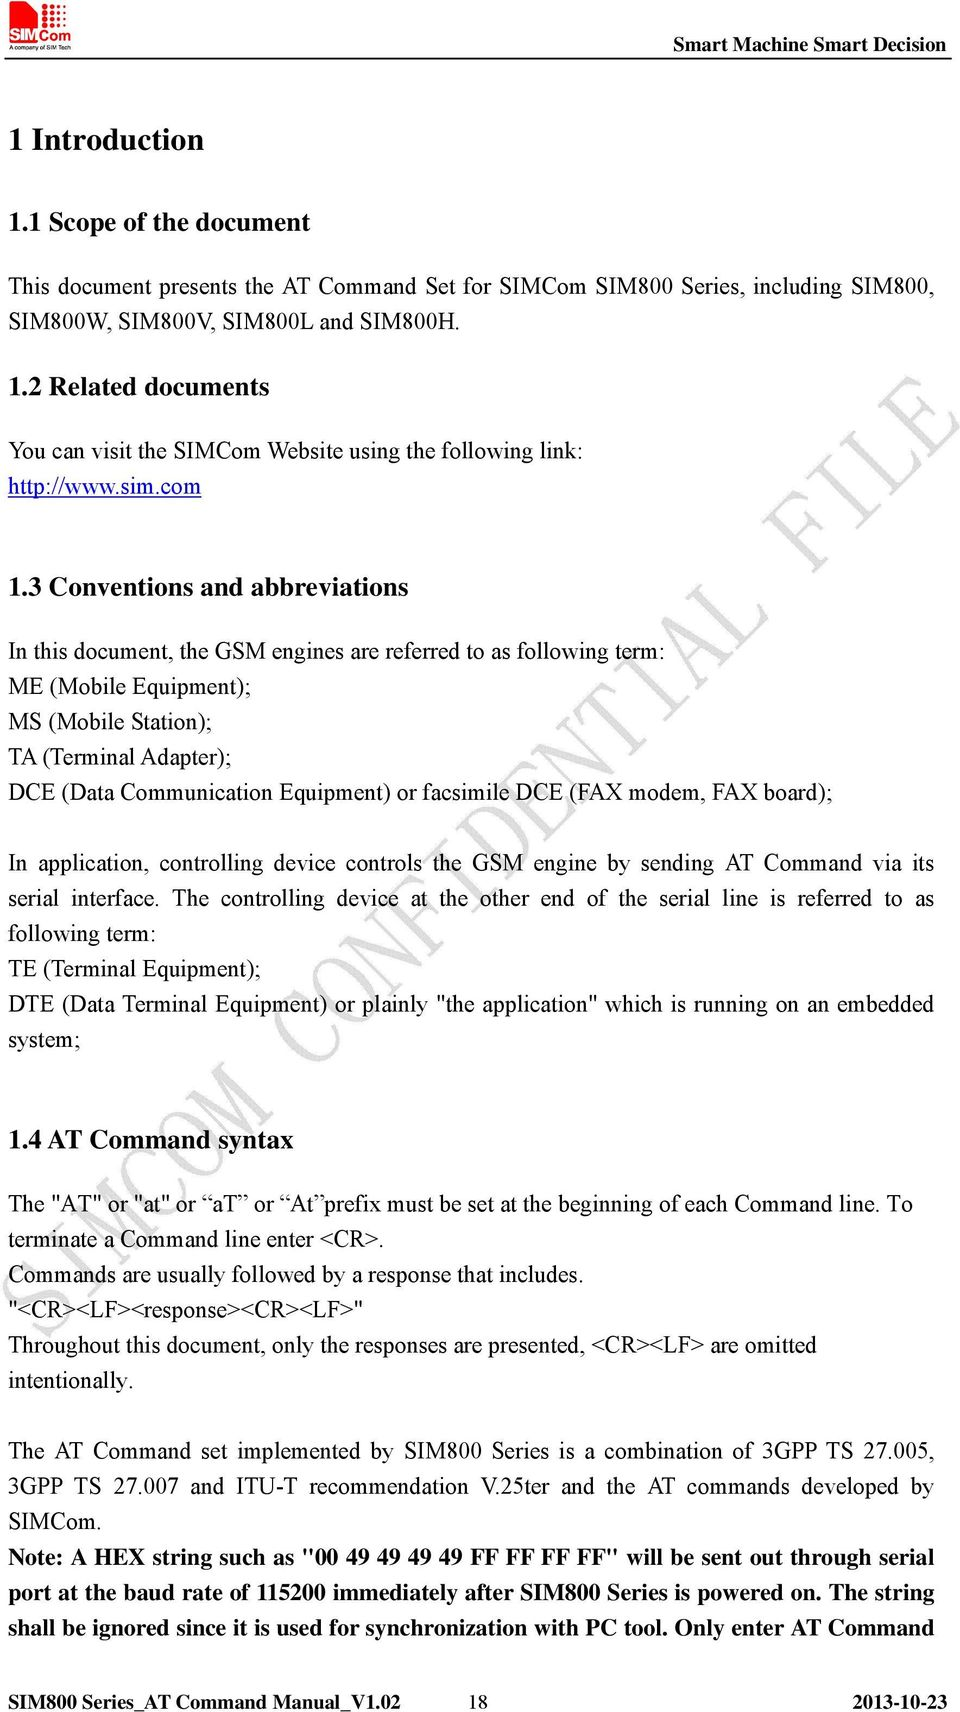 3 Conventions and abbreviations In this document, the GSM engines are referred to as following term: ME (Mobile Equipment); MS (Mobile Station); TA (Terminal Adapter); DCE (Data Communication